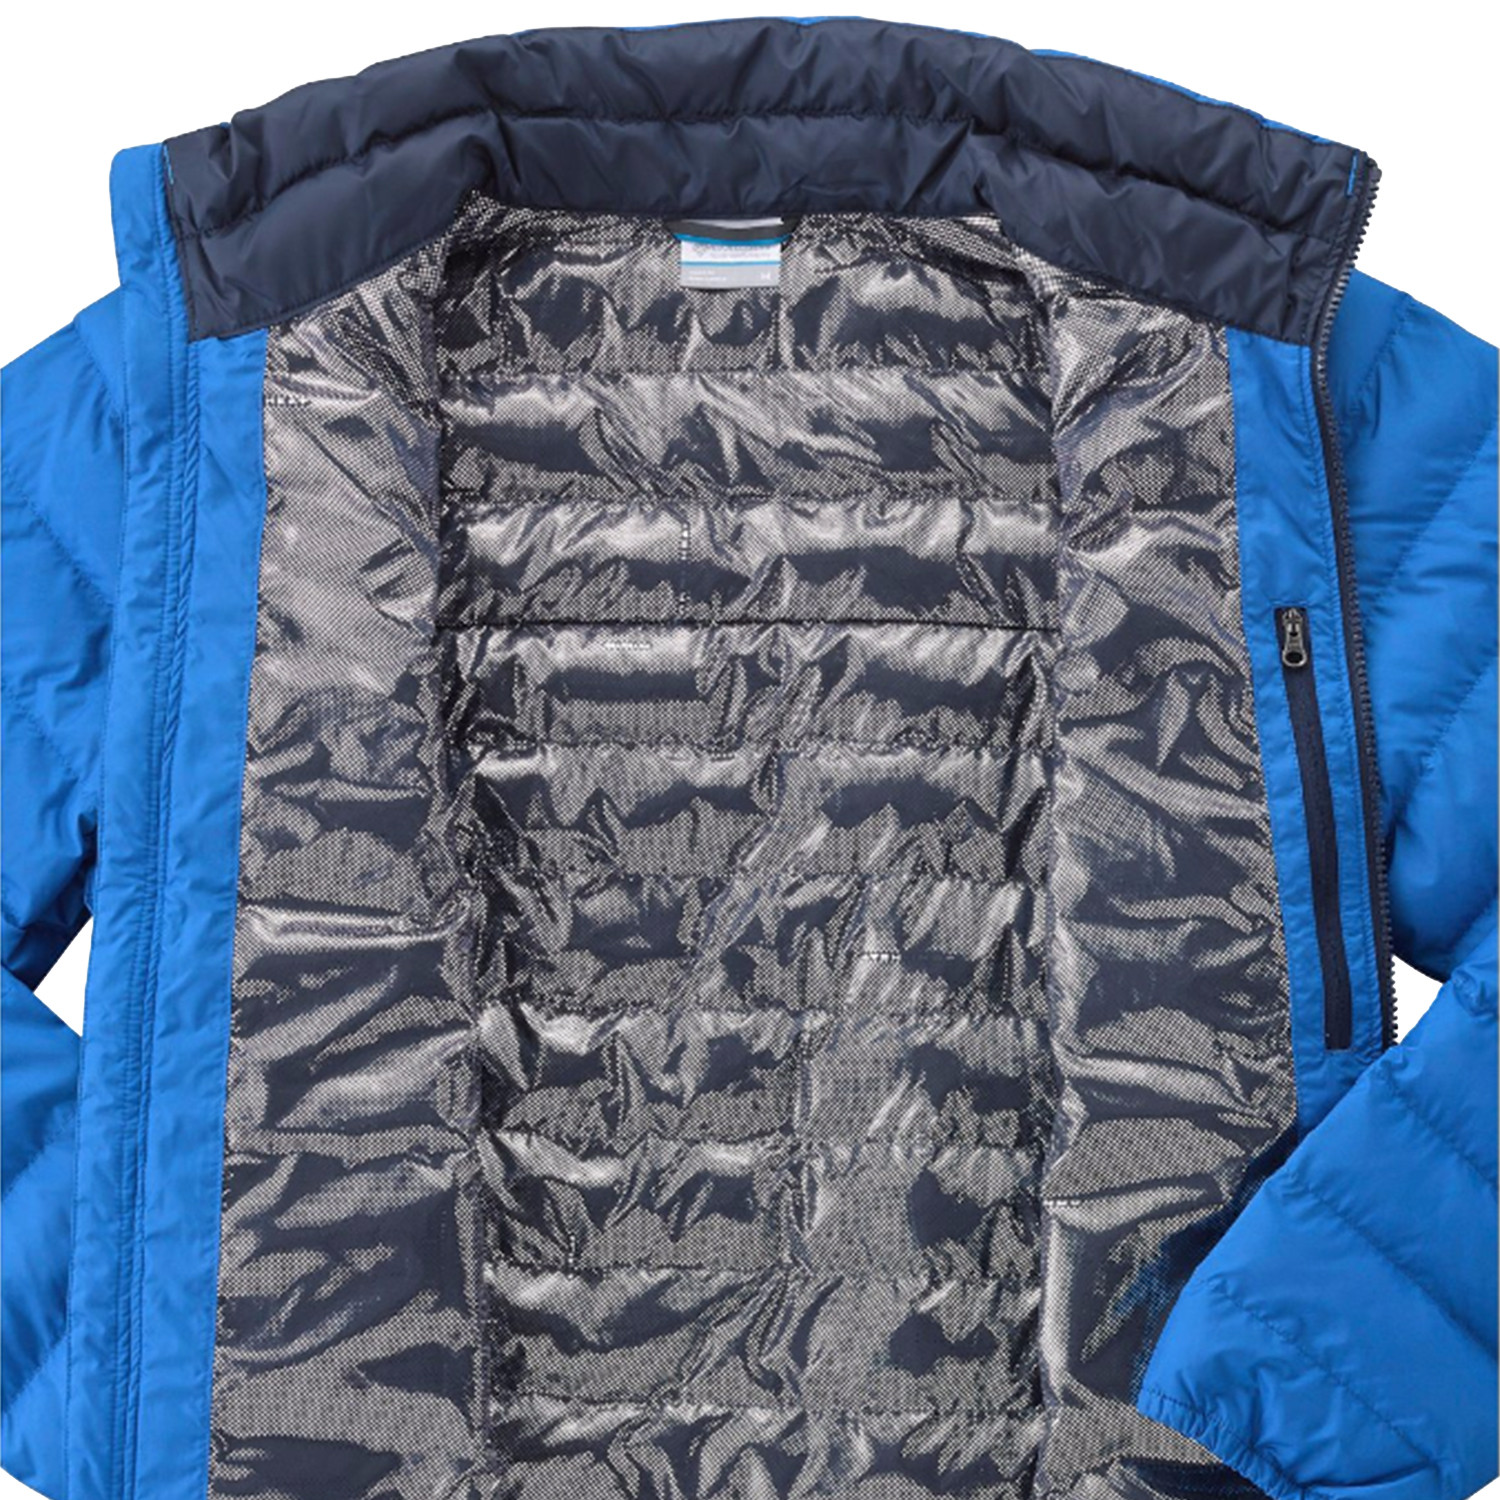 Columbia Powder-Lite Jacket Doudoune Homme